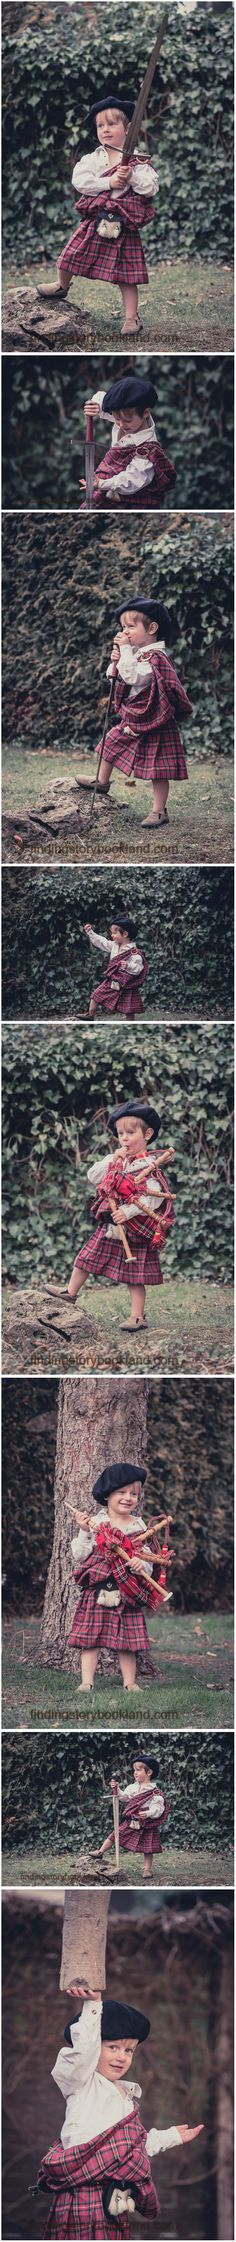 A simple tutorial for a Scottish Great Kilt costume and photo shoot. Perfect for Outlander or Braveheart LARP or COSPLAY. From findingstorybookland.com